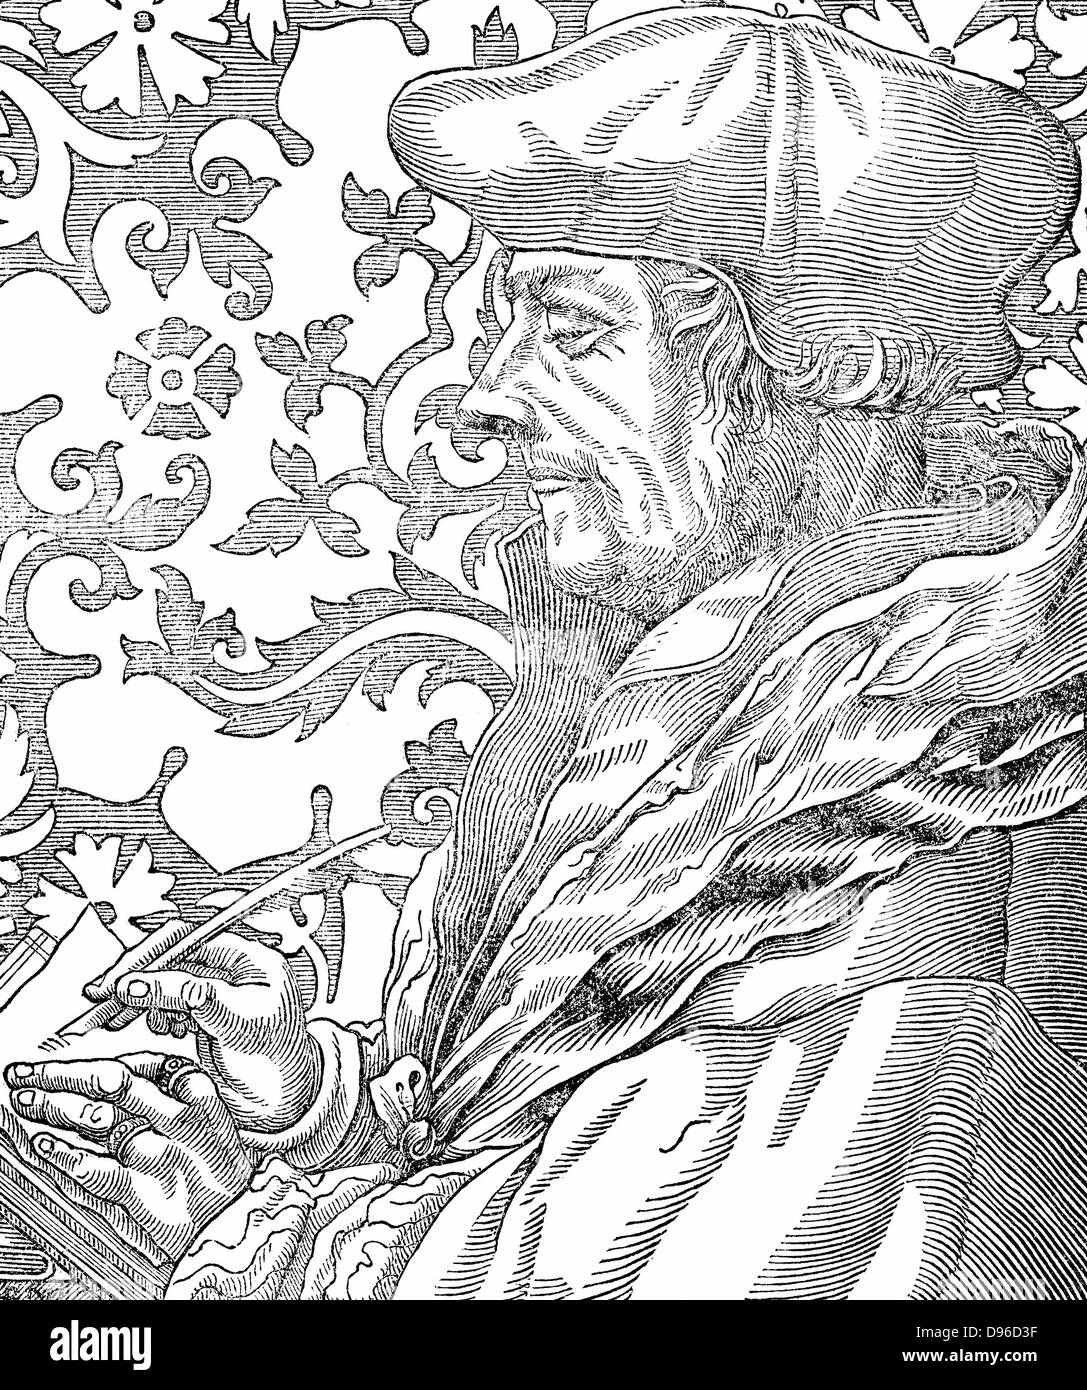 Desiderus Erasmus (1465-1536) Dutch humanist and scholar.  Engraving after Holbein. - Stock Image